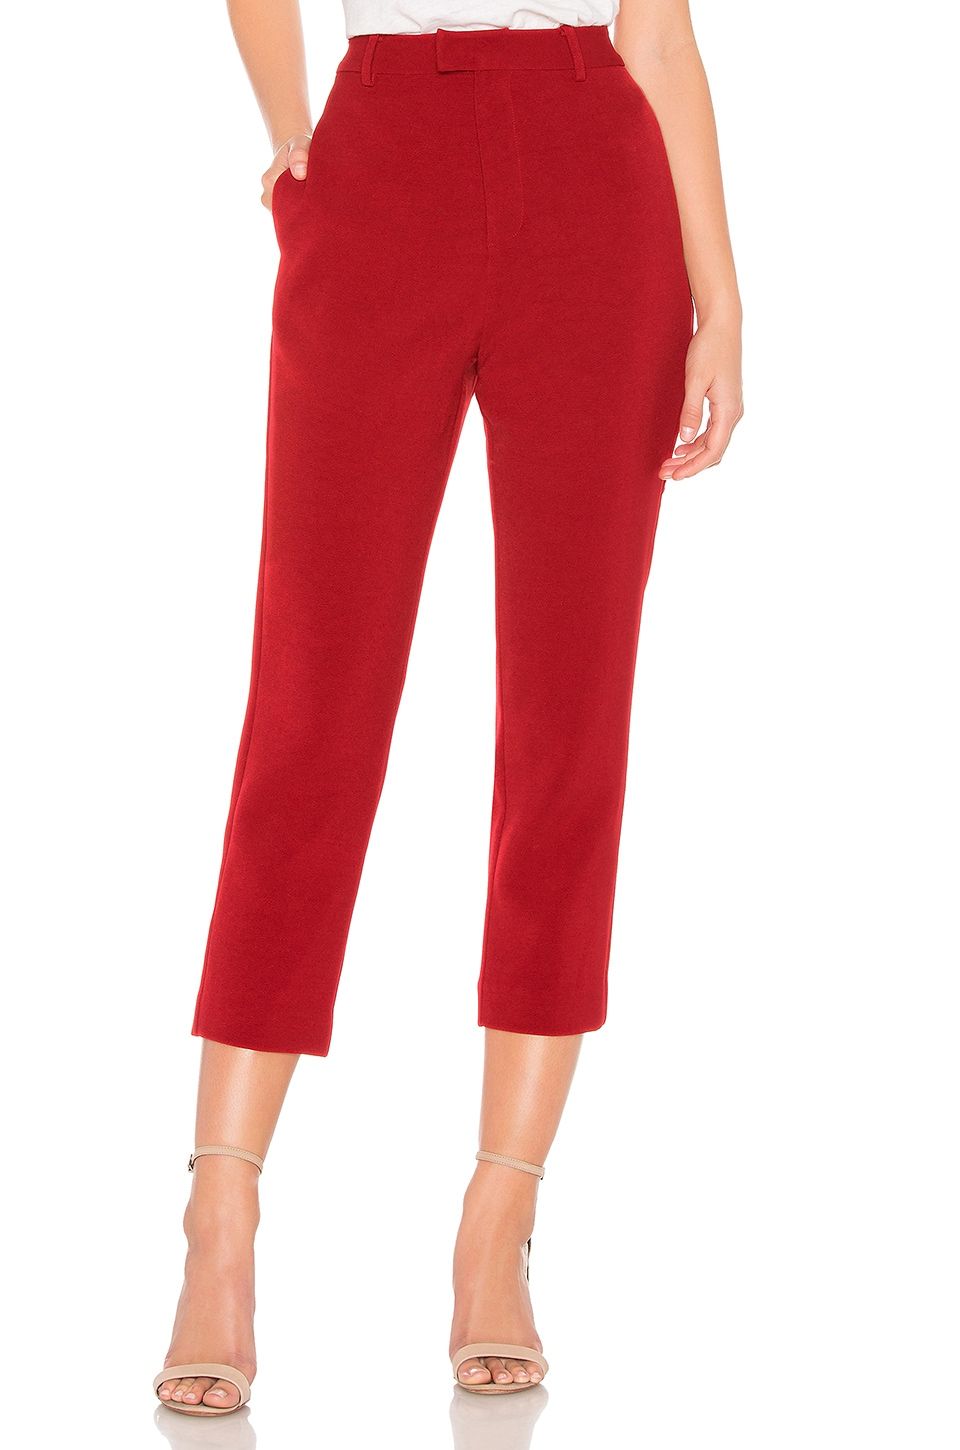 Line & Dot Rosey Cropped Pant in Red